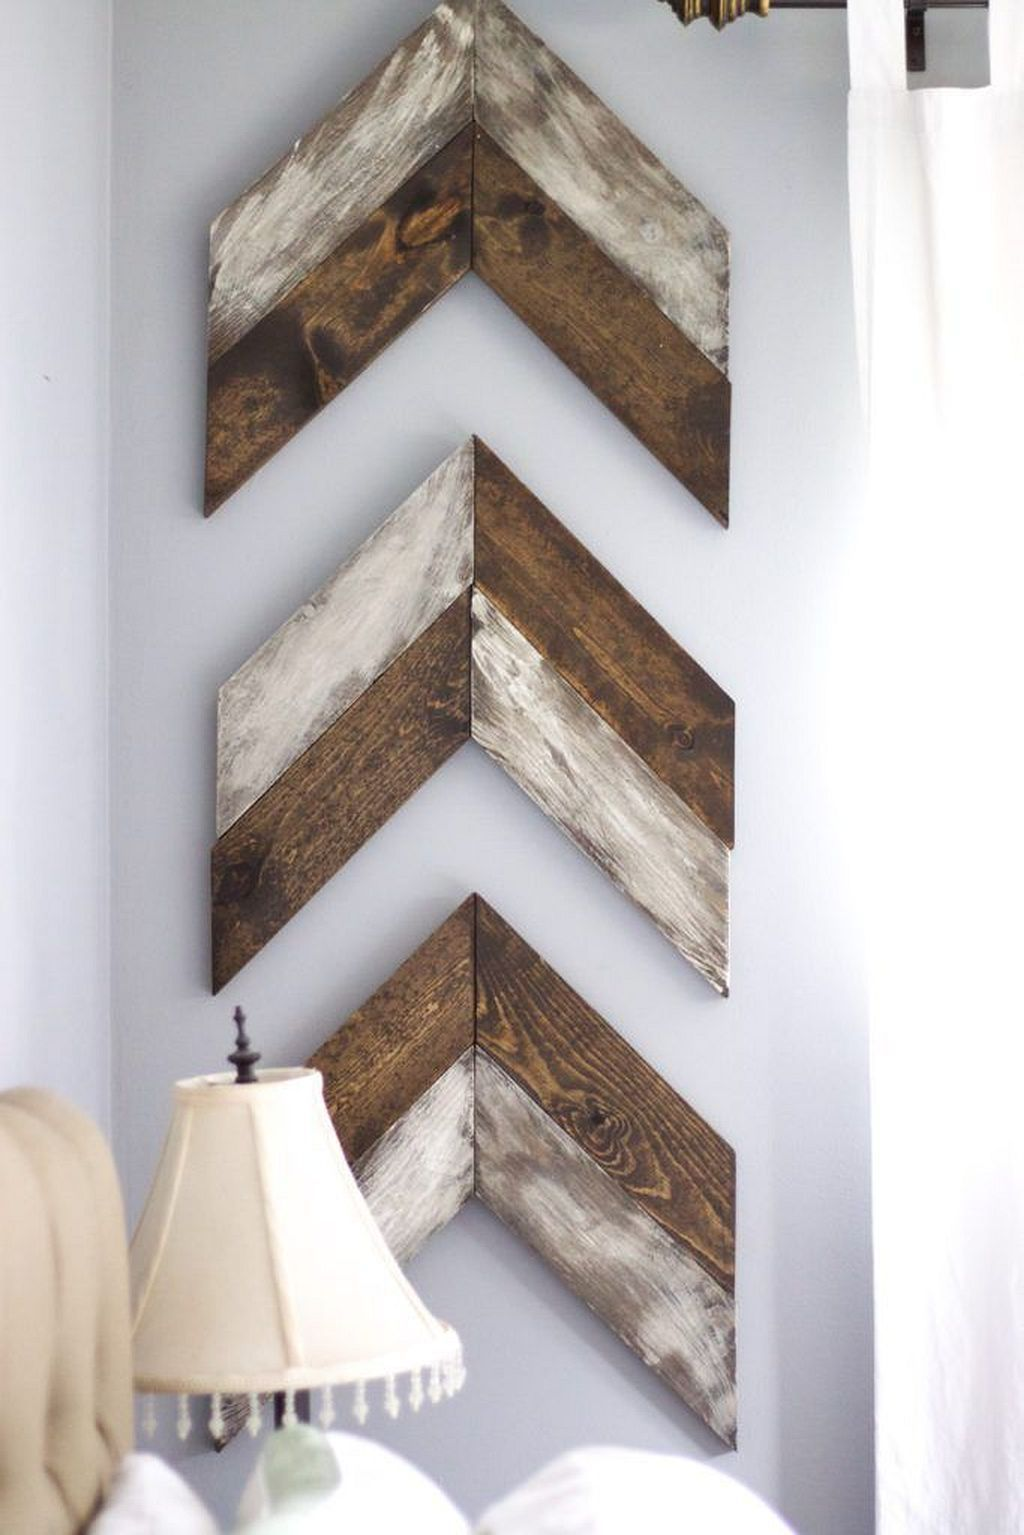 20+ Awesome DIY Pallet Projects Ideas for Your Home Interior Design